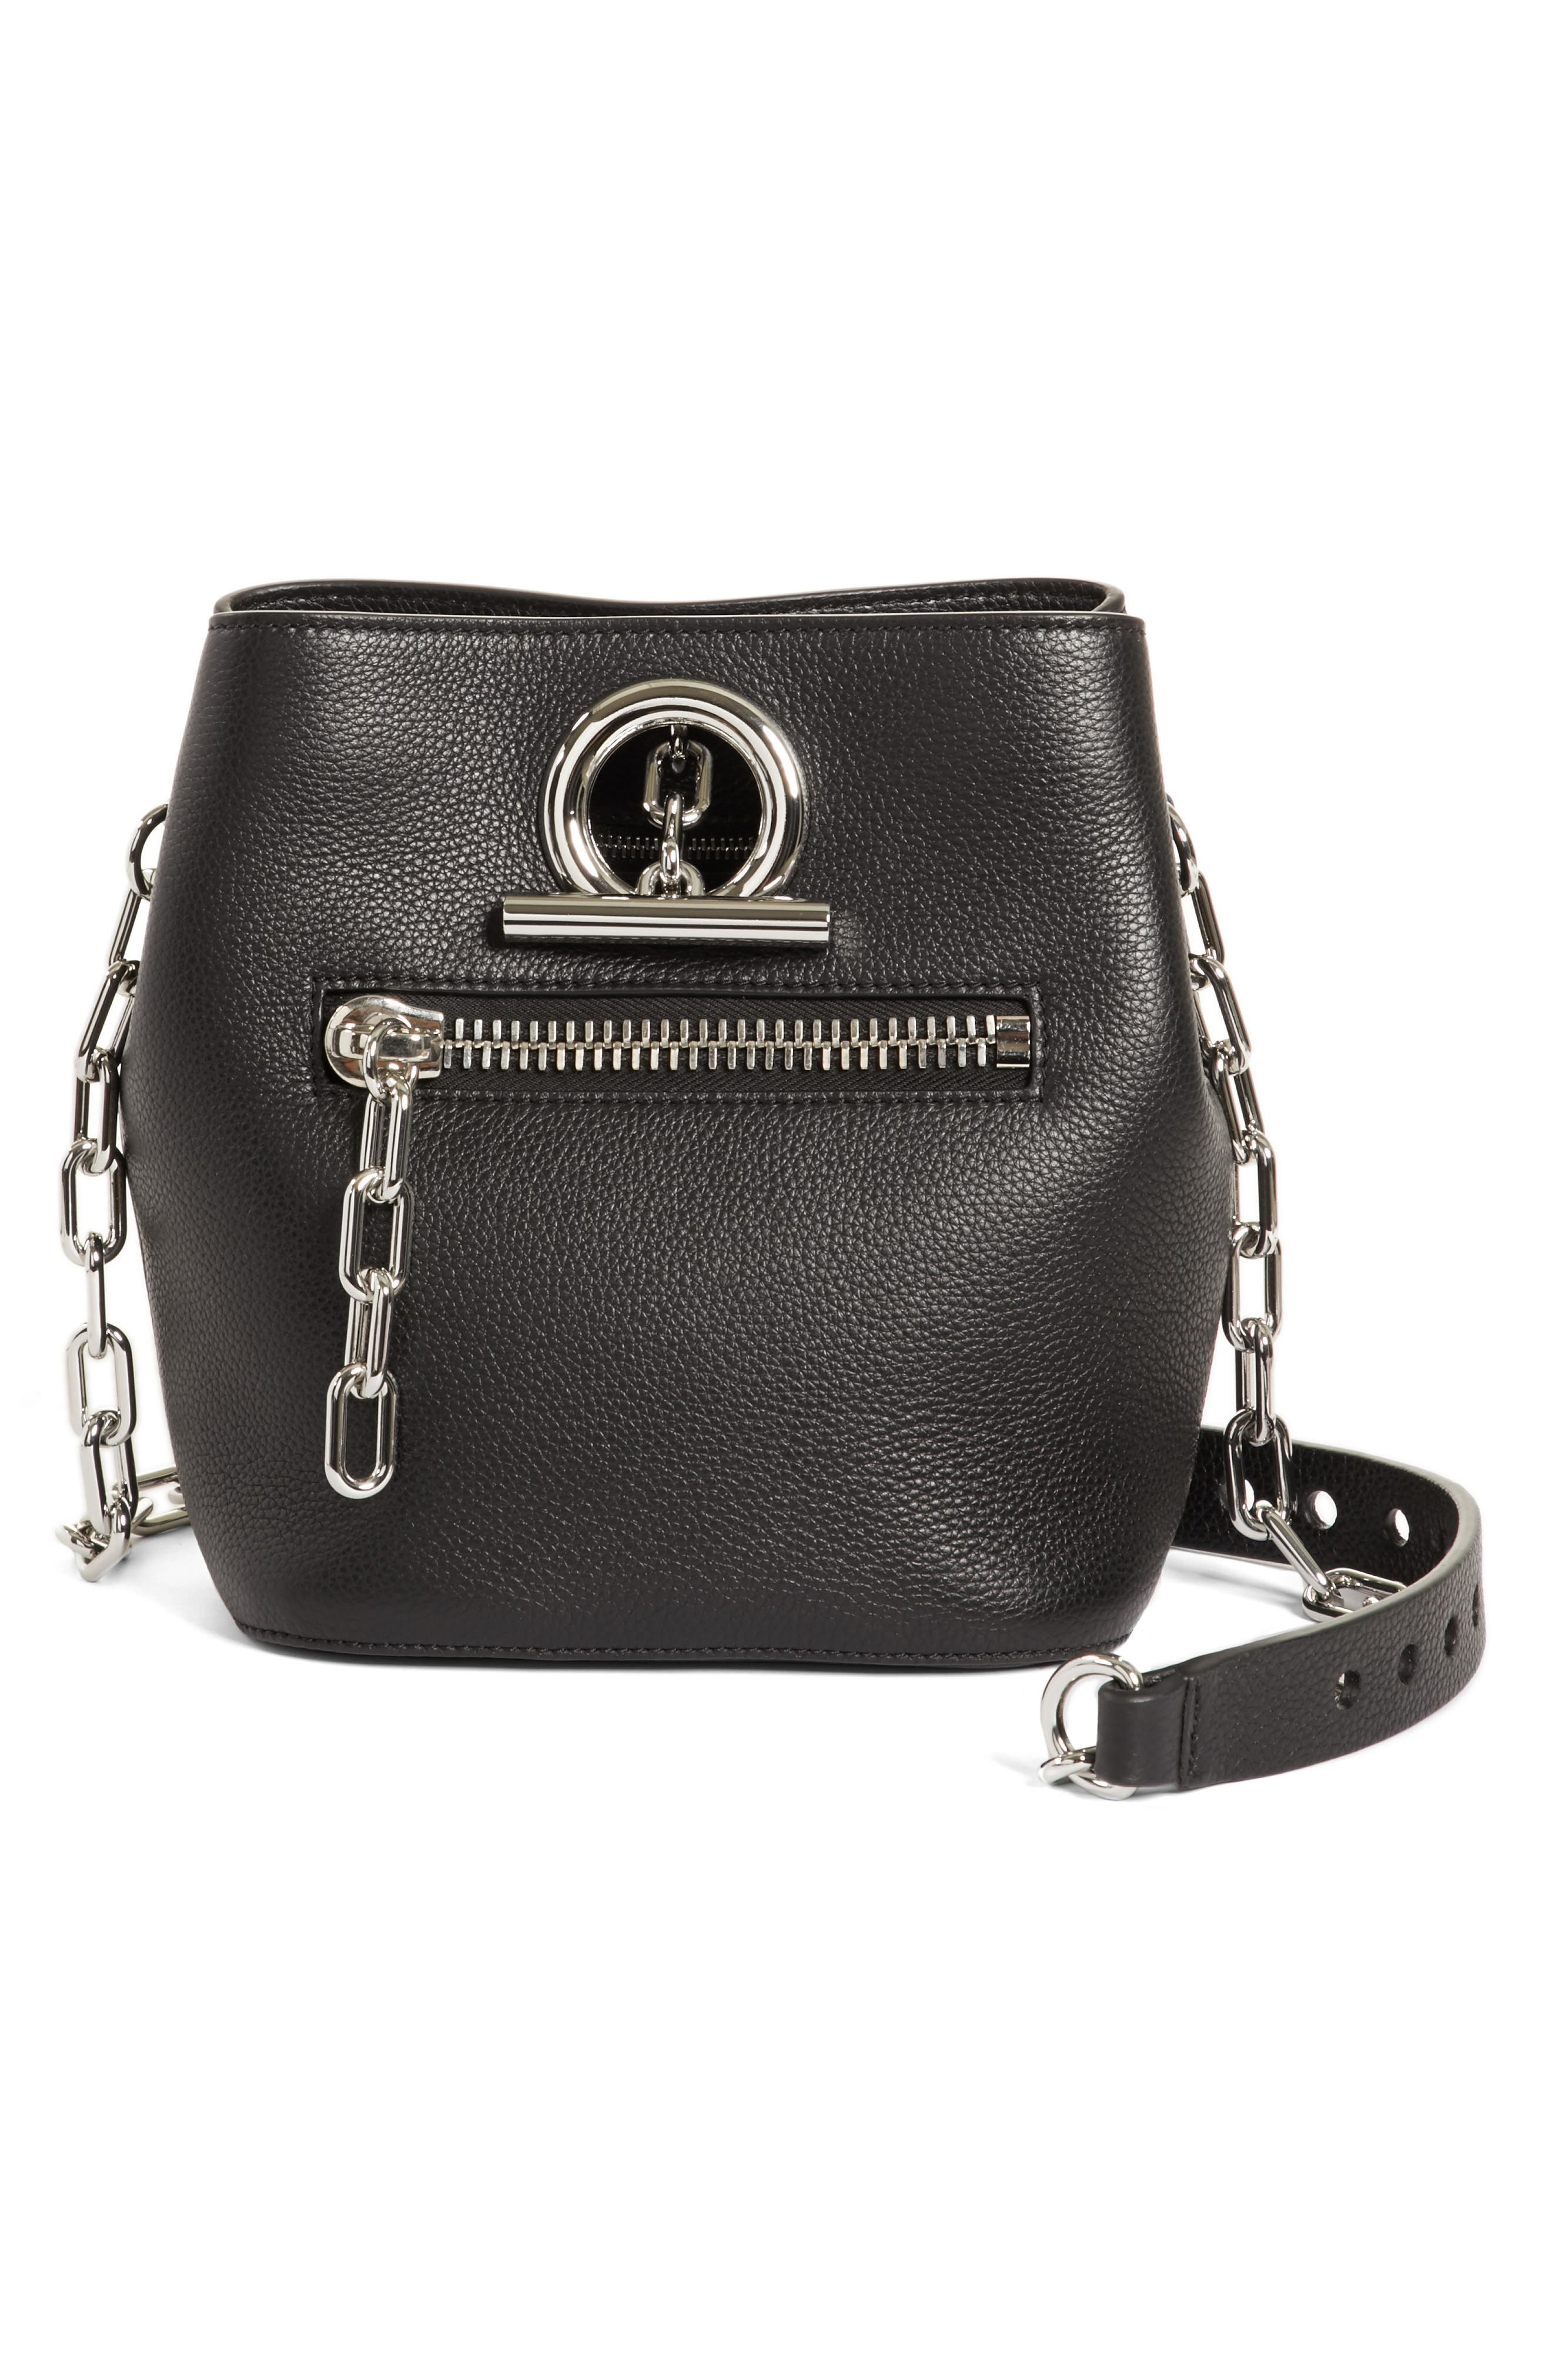 Riot Leather Crossbody Bag,                             Main thumbnail 1, color,                             Black